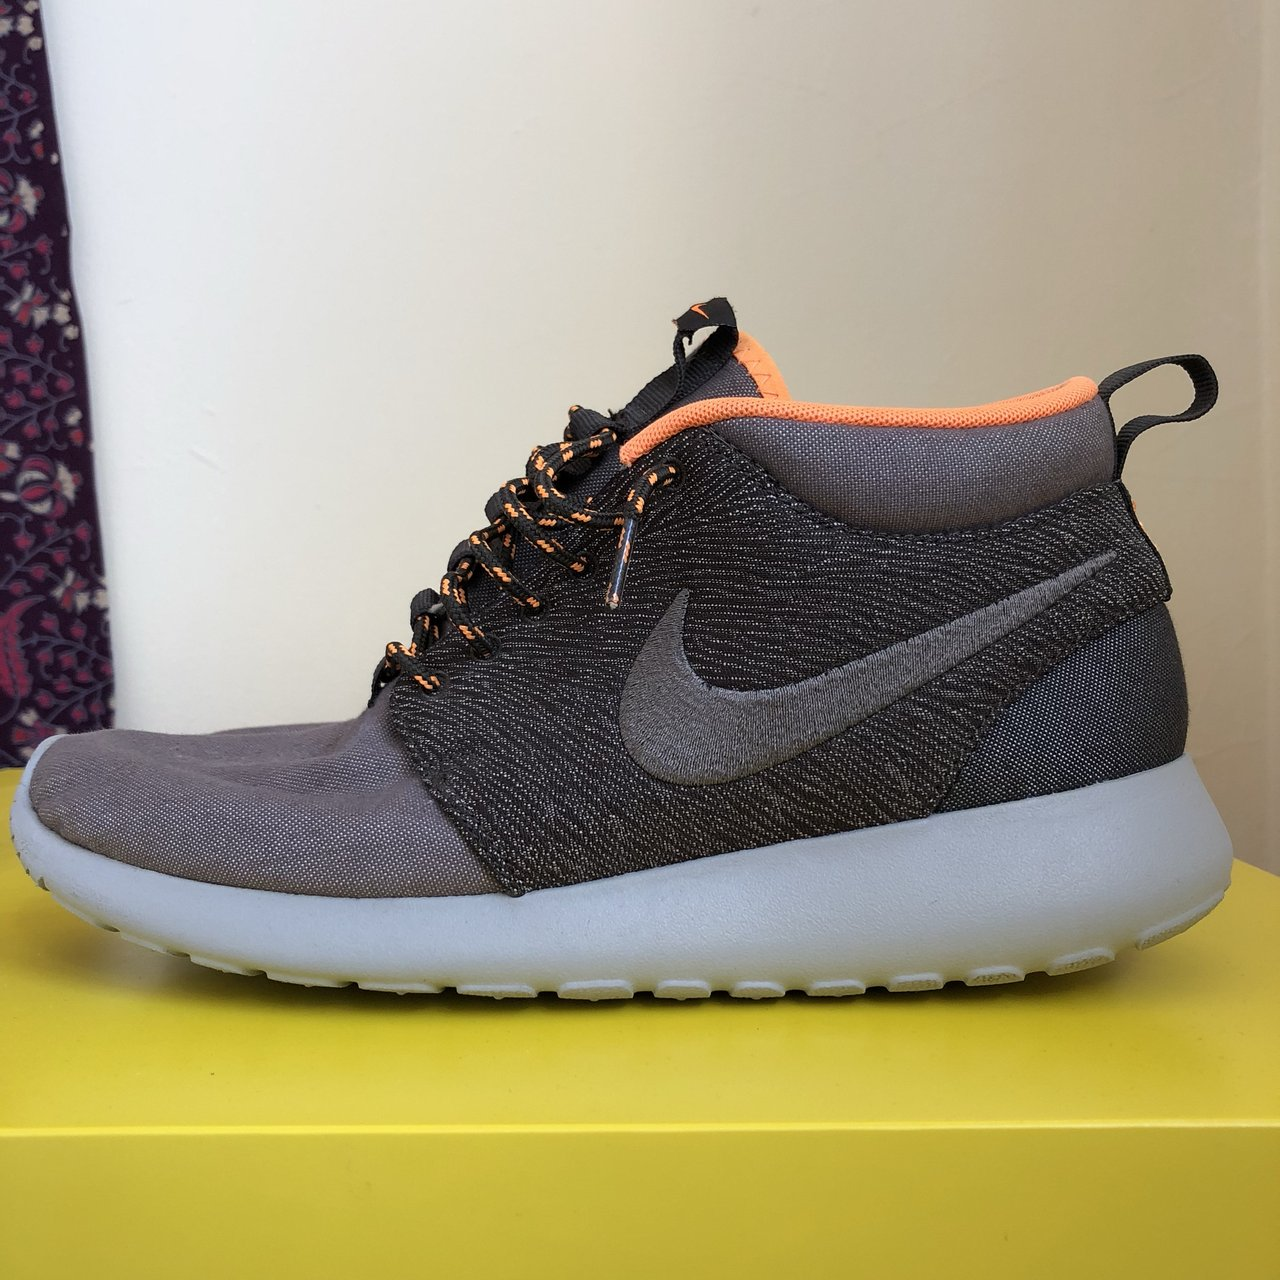 Nike Roshe Run Mid City Pack - London Basically perfect and - Depop 04183246f